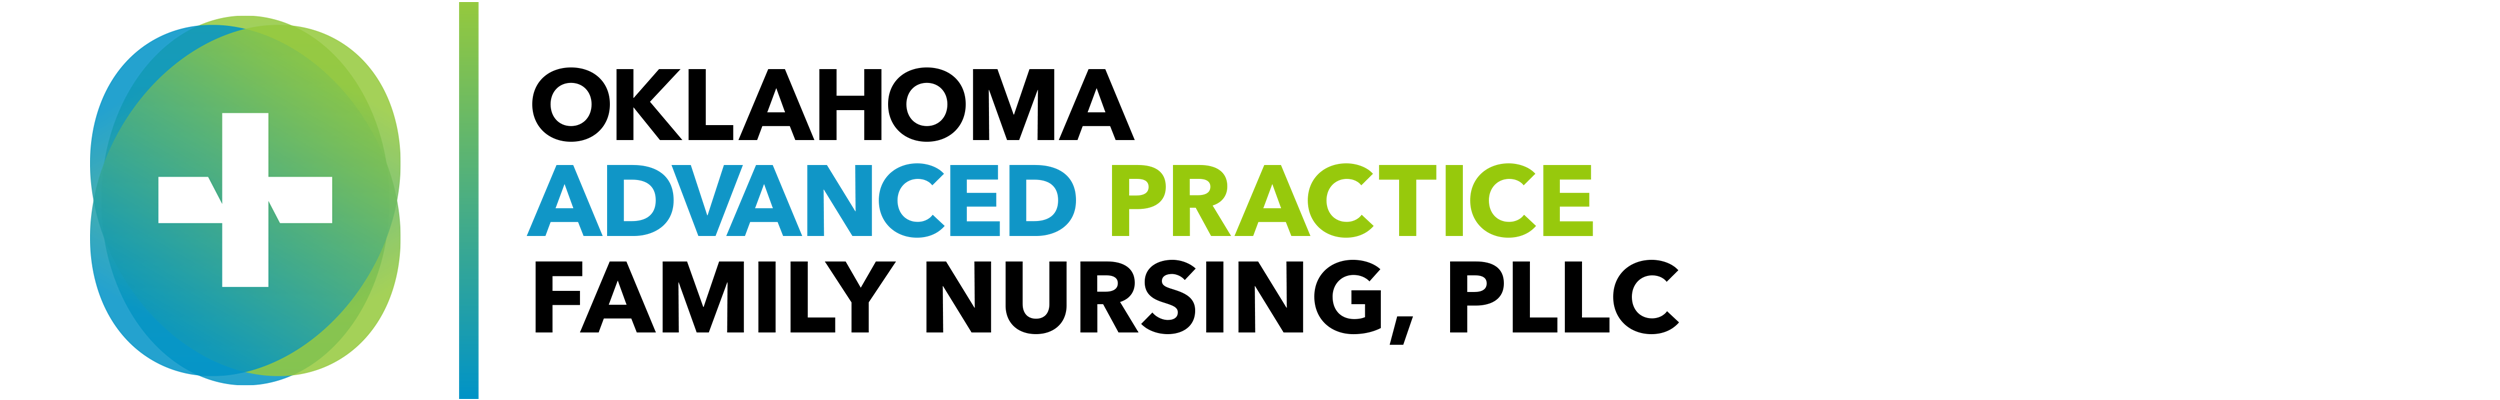 Oklahoma Advanced Practice Family Nursing, PLLC